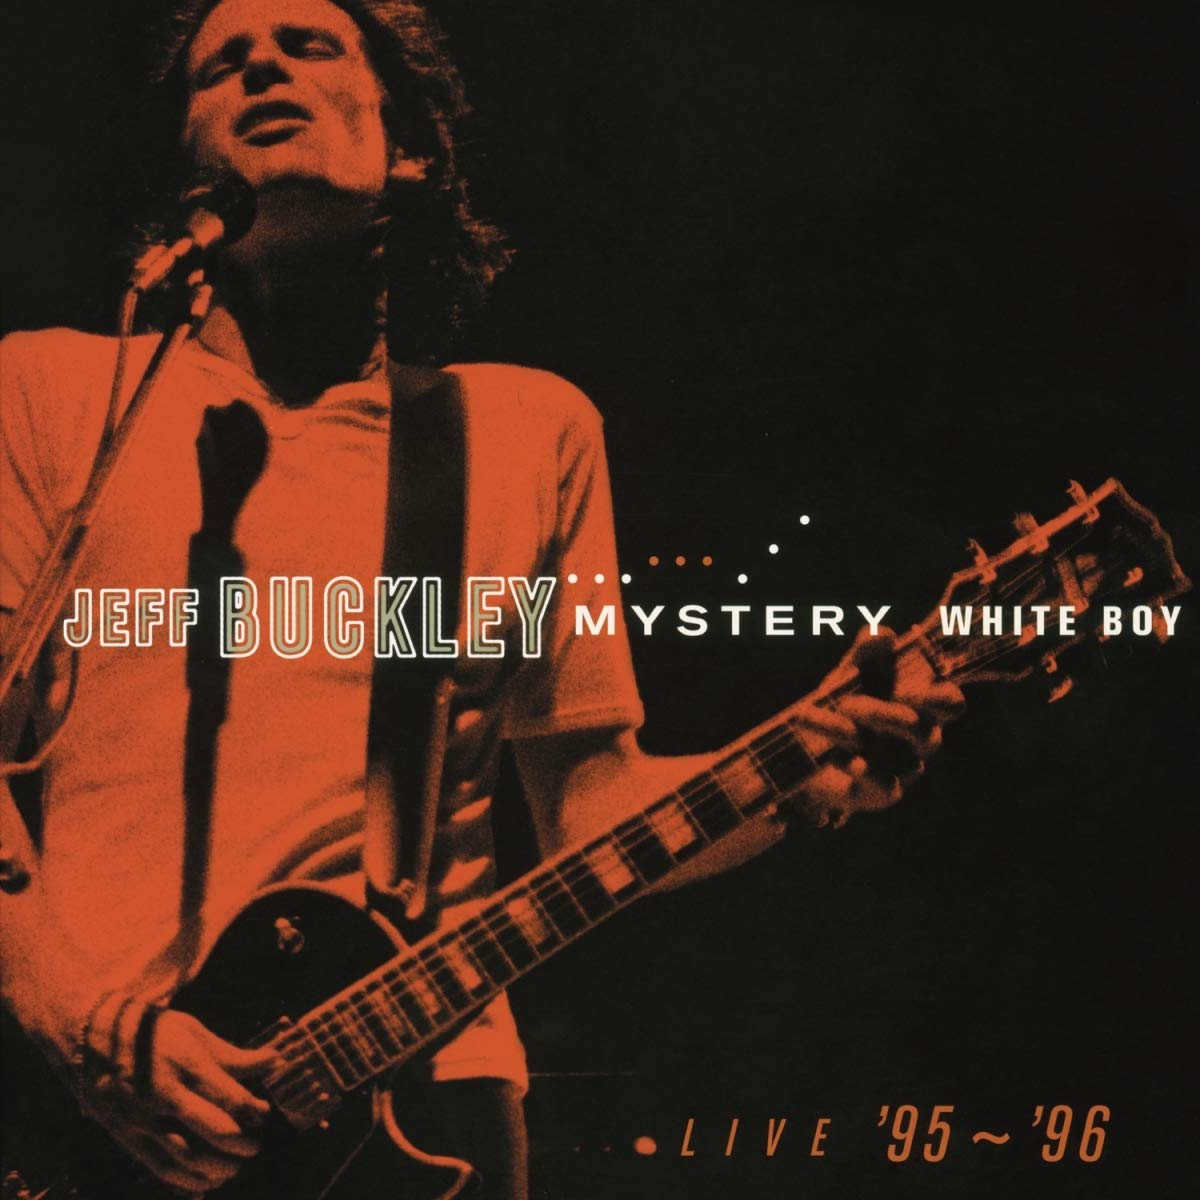 Vinilo : Jeff Buckley - Mystery White Boy (Gatefold LP Jacket, 140 Gram Vinyl, Download Insert, 2PC)